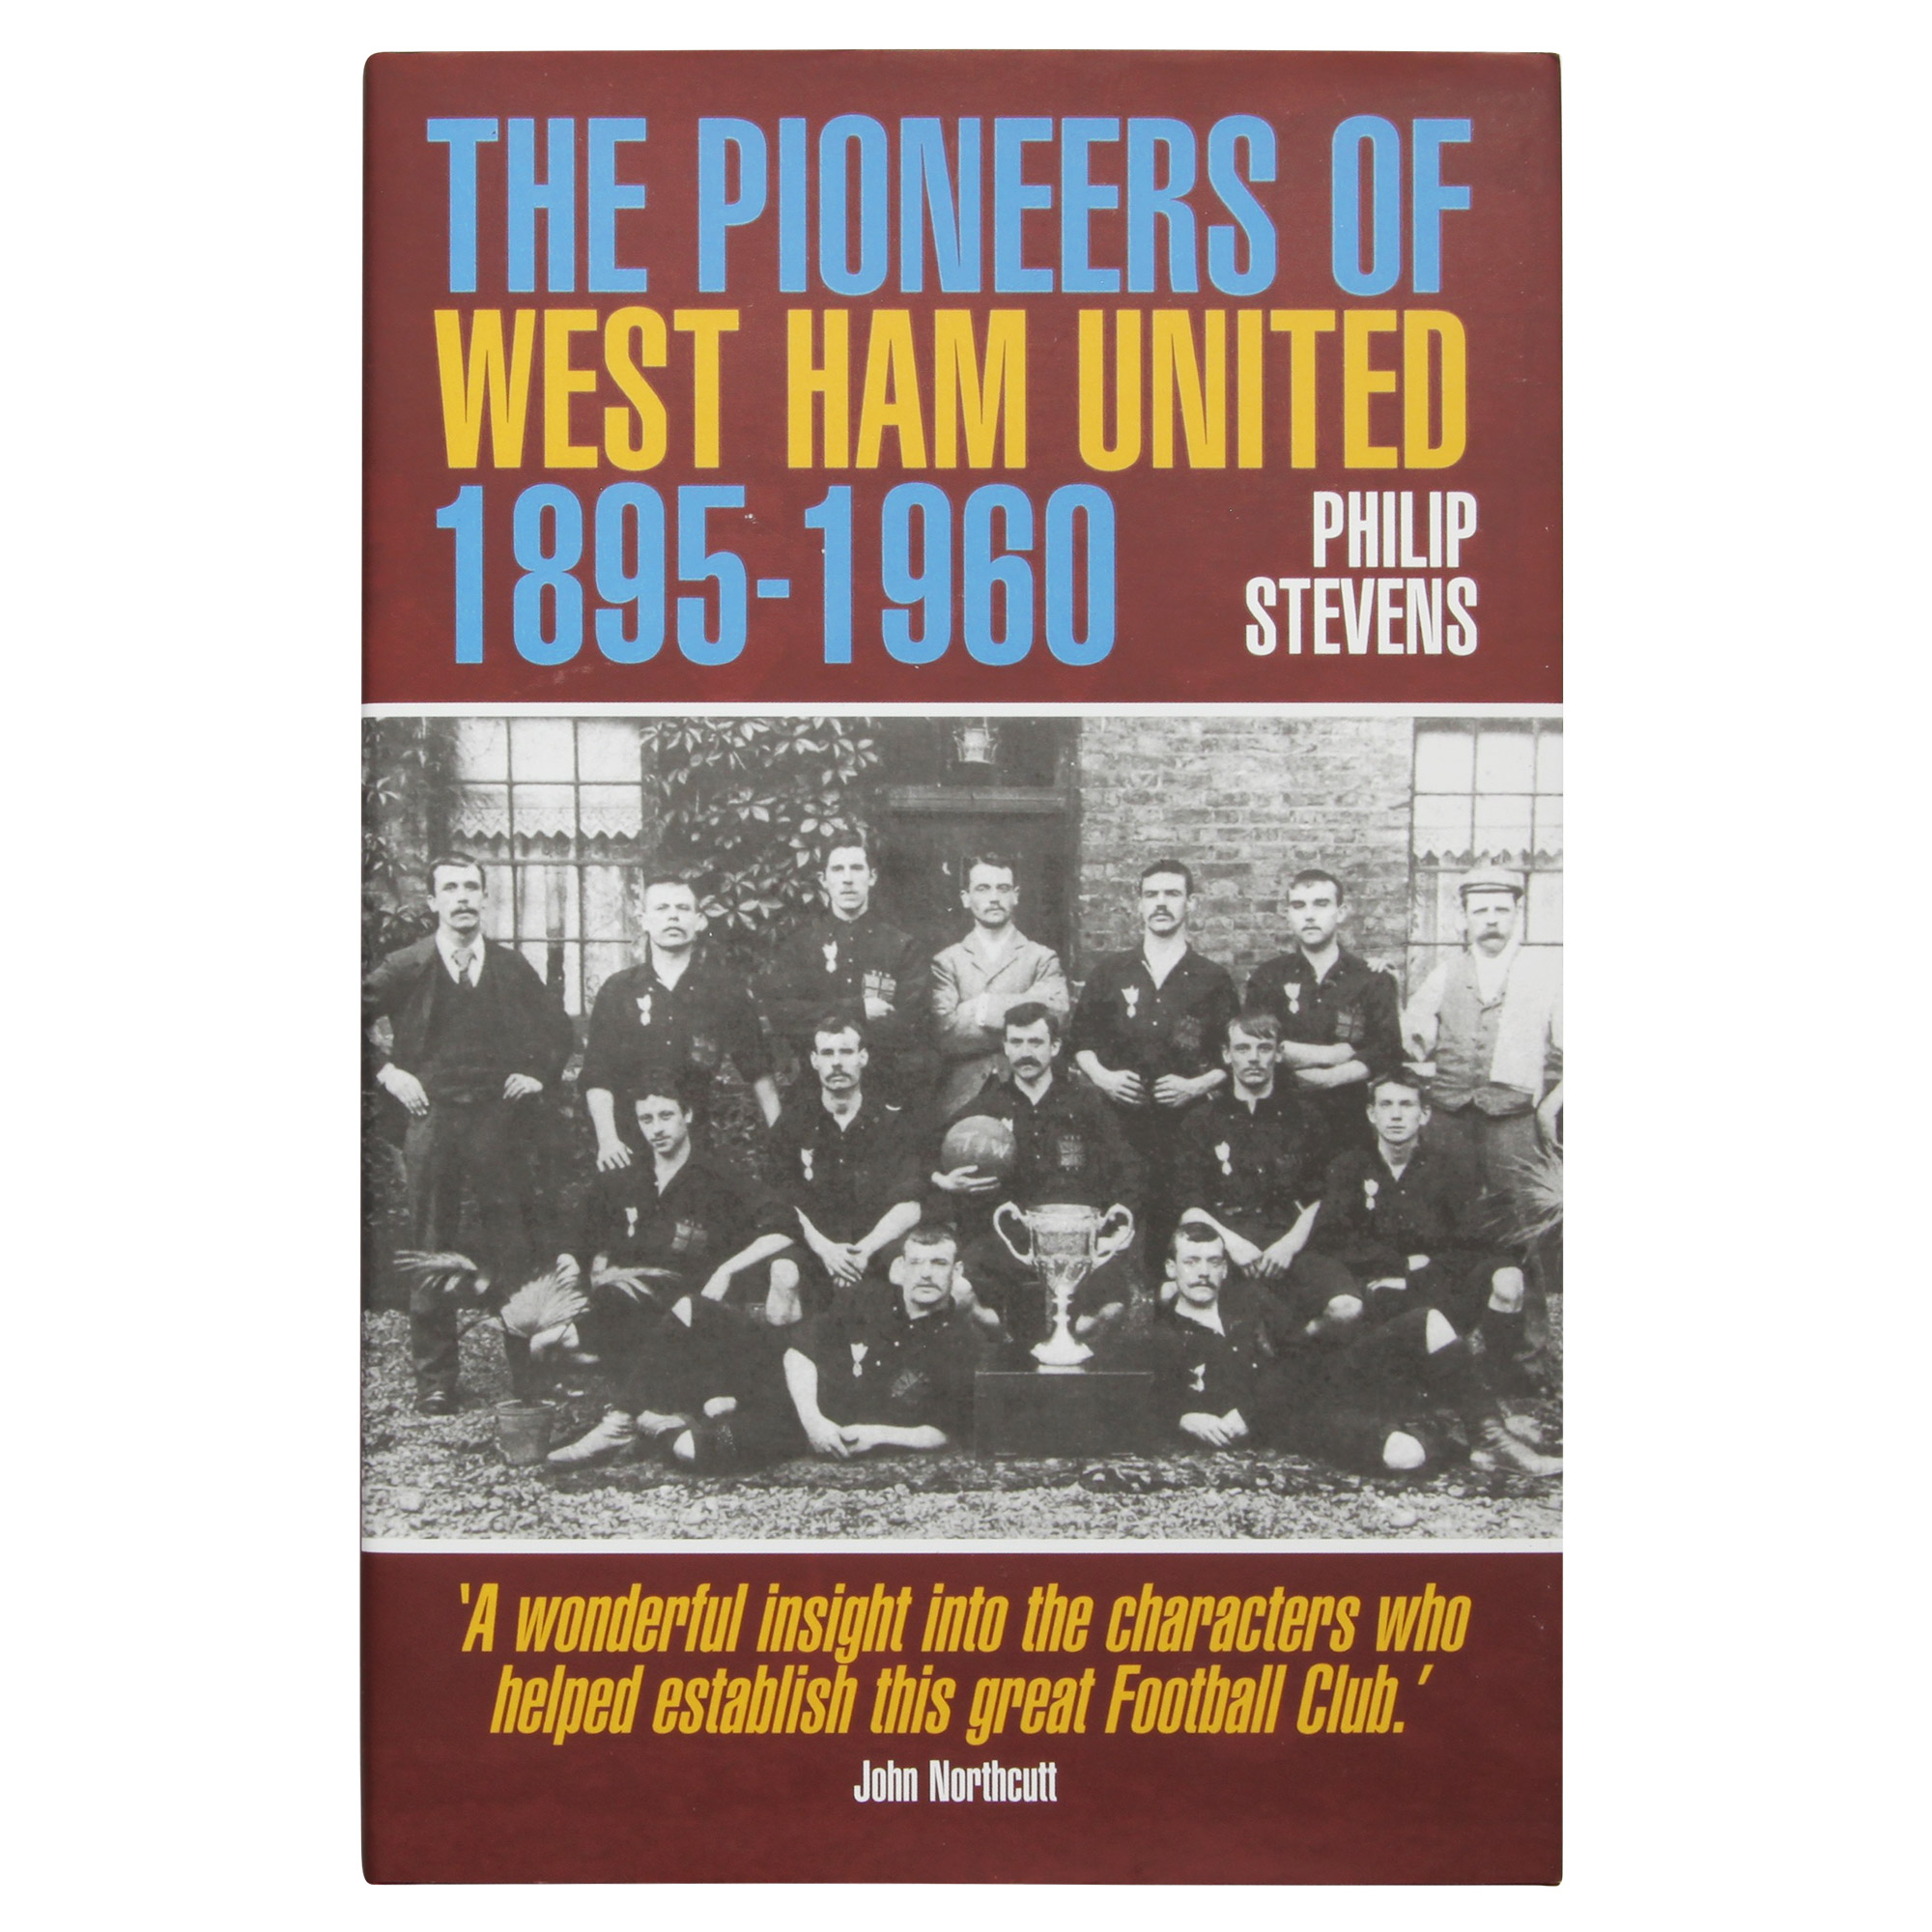 THE PIONEERS OF WEST HAM UNITED BOOK